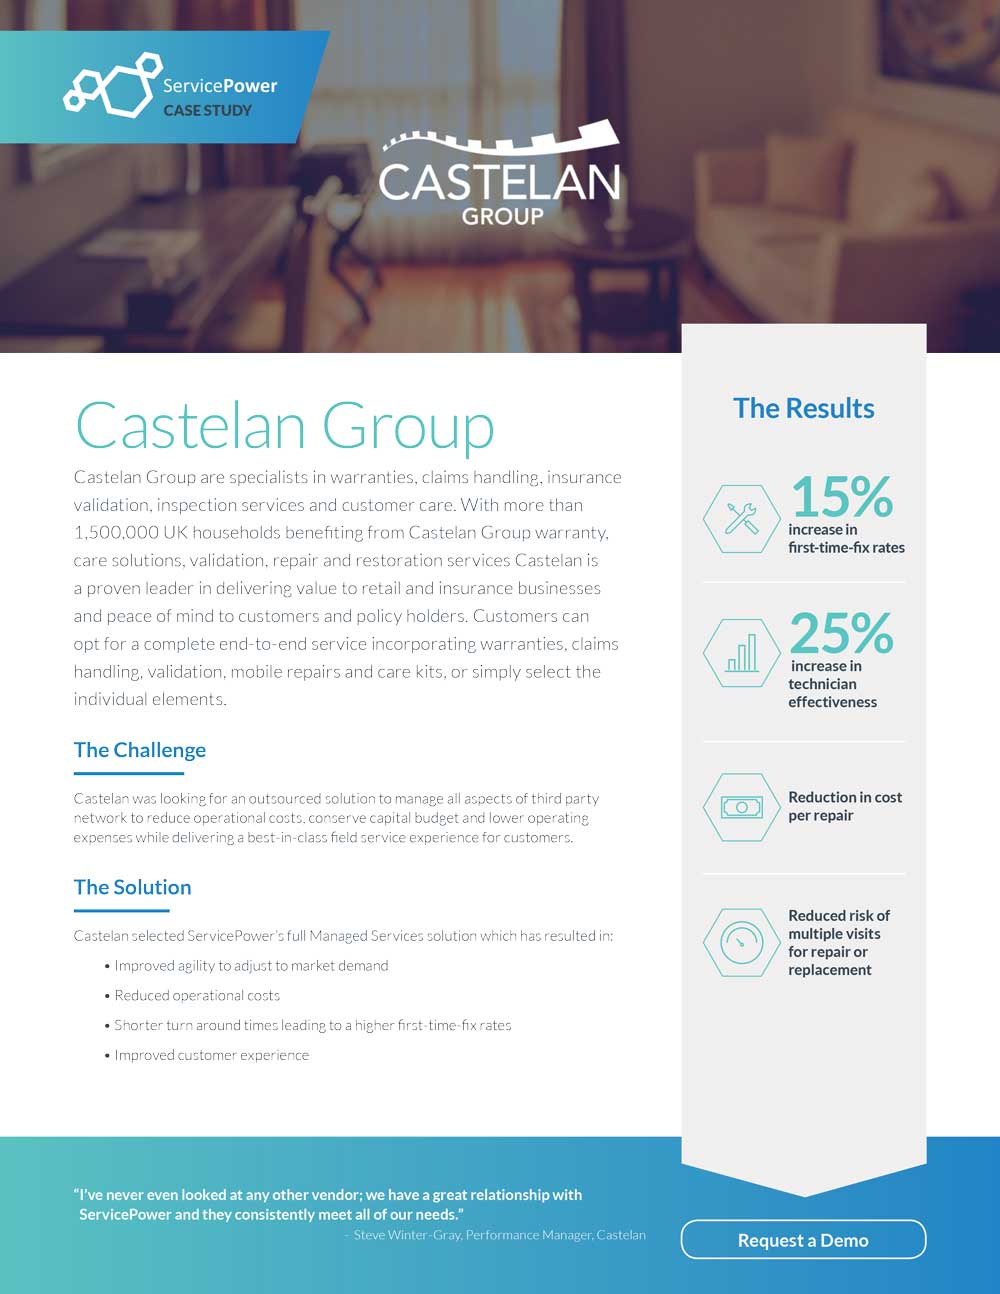 Castelan Group Outsourced Third-Party Management to ServicePower